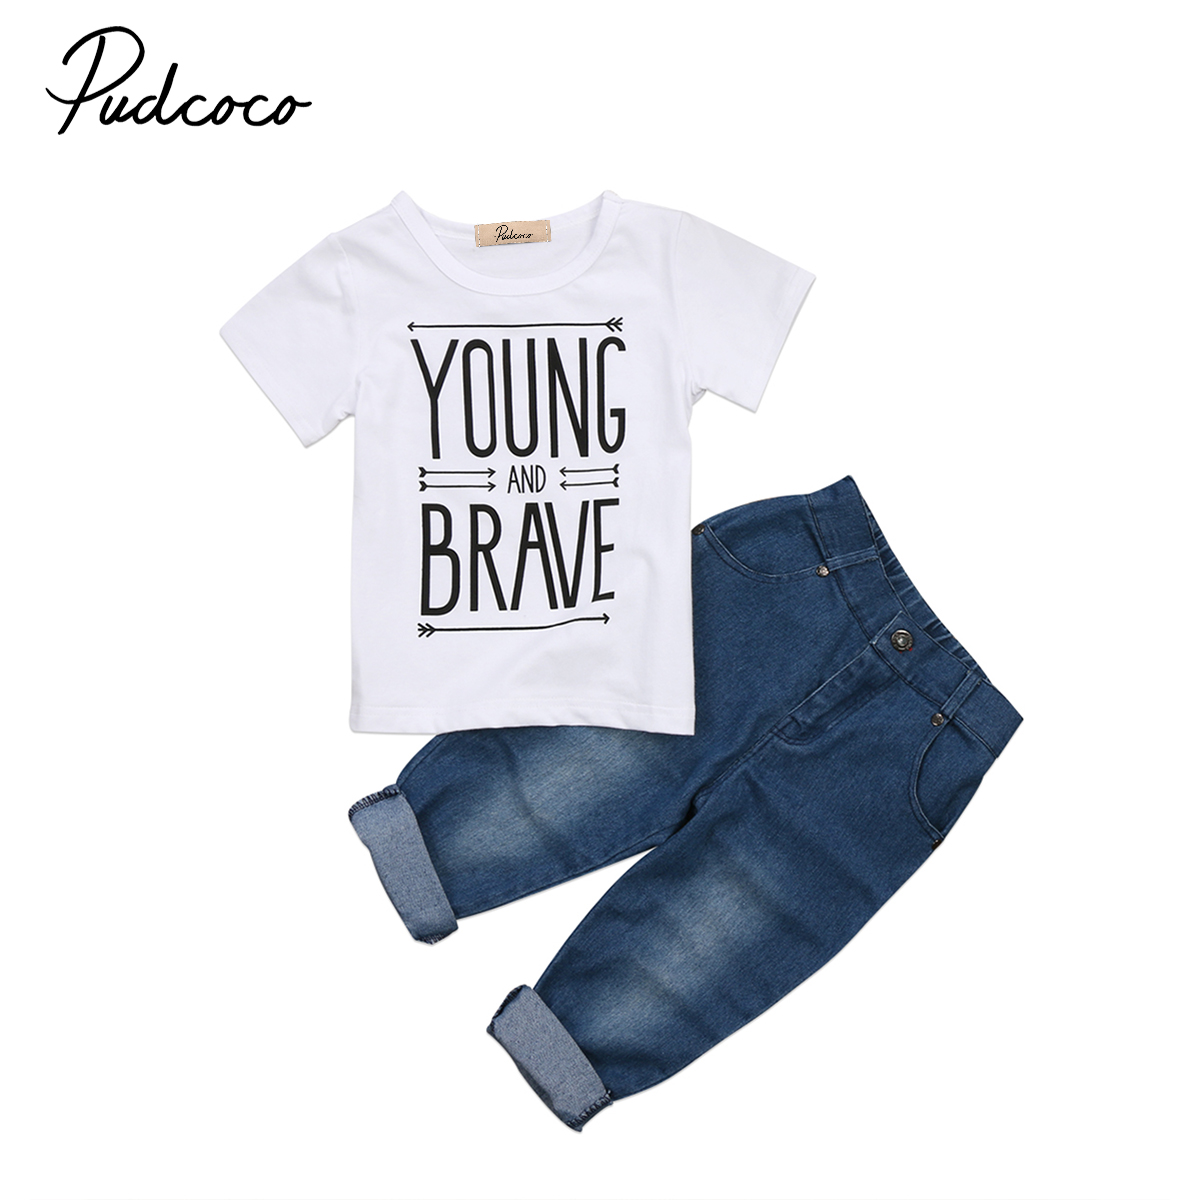 2017 Brand New Newborn Toddler Infant Kid Baby Boy Clothes Short Sleeve T Shirts Tee Tops Denim Pants 2Pcs Outfit Casual Sets infant baby boy girl 2pcs clothes set kids short sleeve you serious clark letters romper tops car print pants 2pcs outfit set